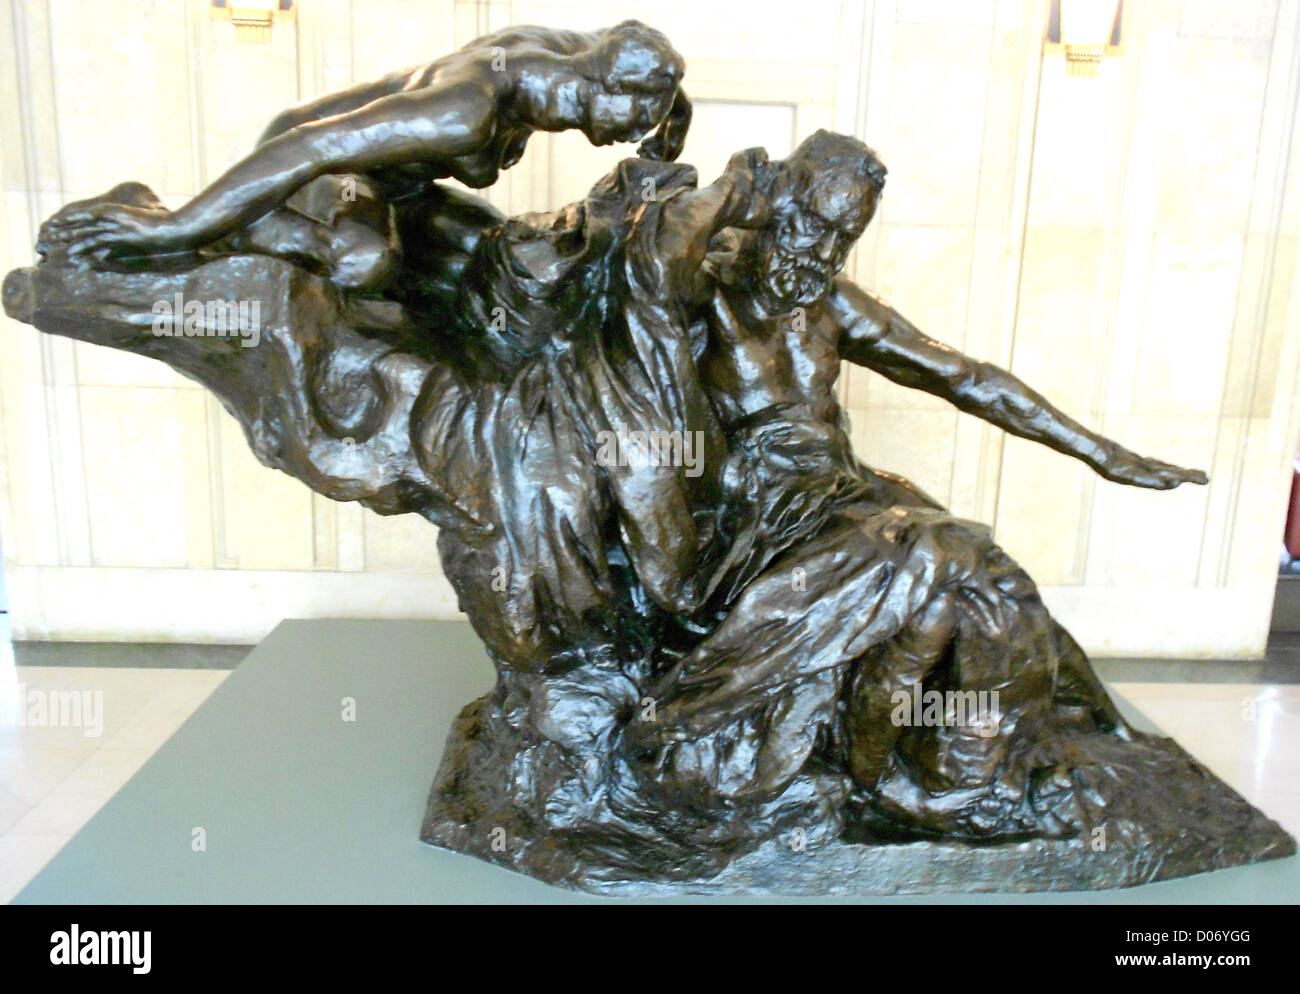 Rodin's monument to Victor Hugo, made in plaster in 1897, cast in 1964. - Stock Image